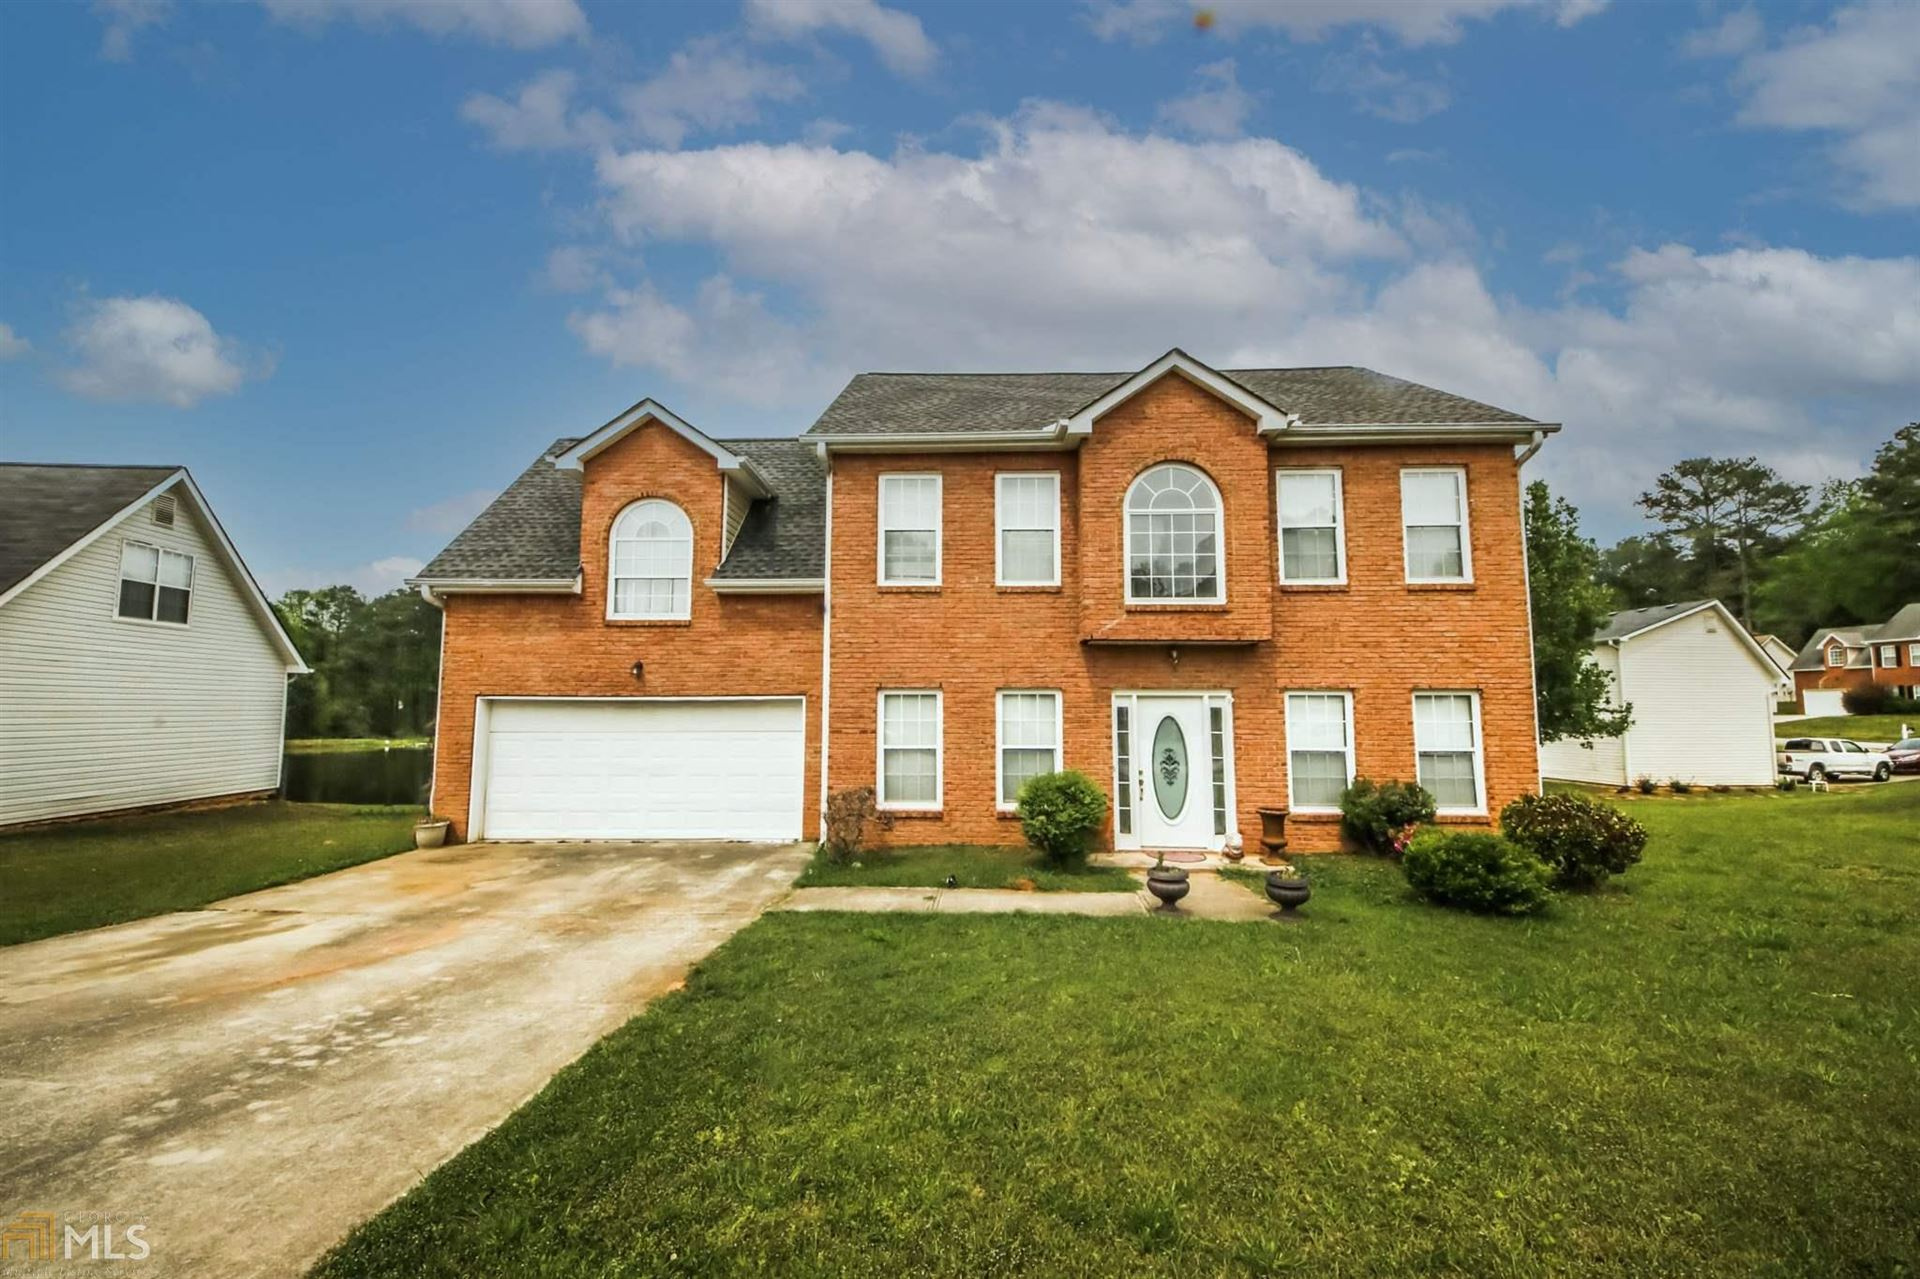 6981 Cheswick, Riverdale, GA 30296 - #: 8962670